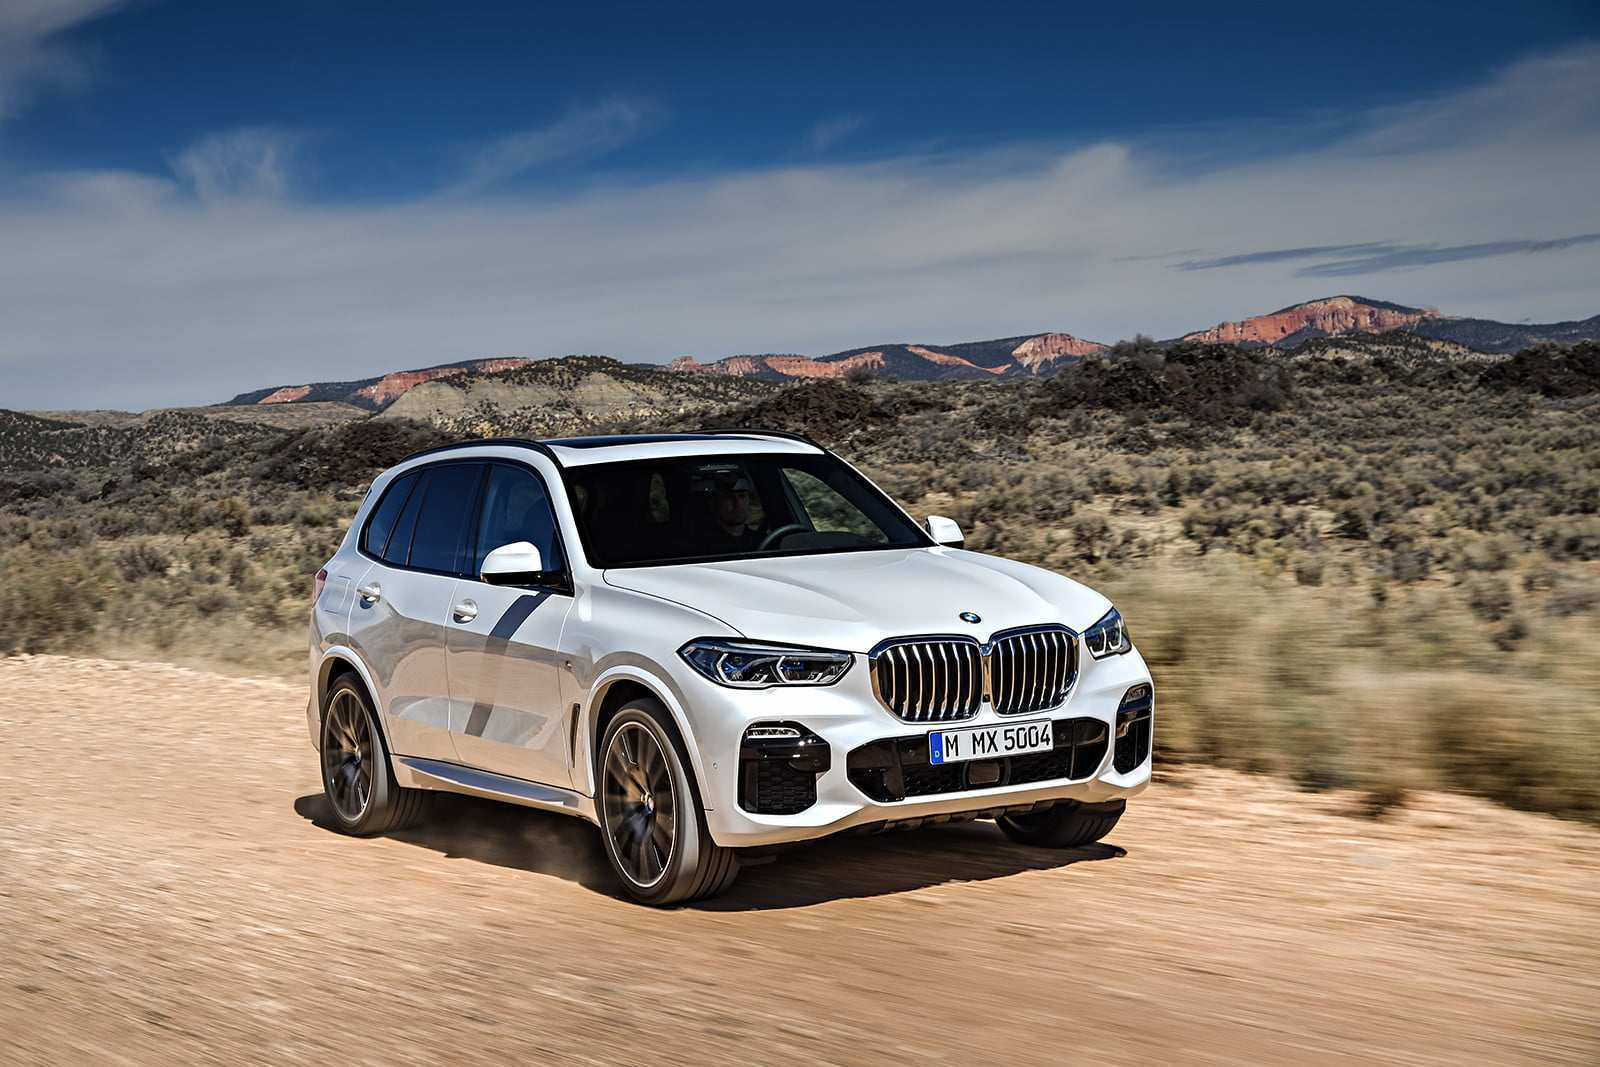 72 All New 2019 Next Gen BMW X5 Suv Research New